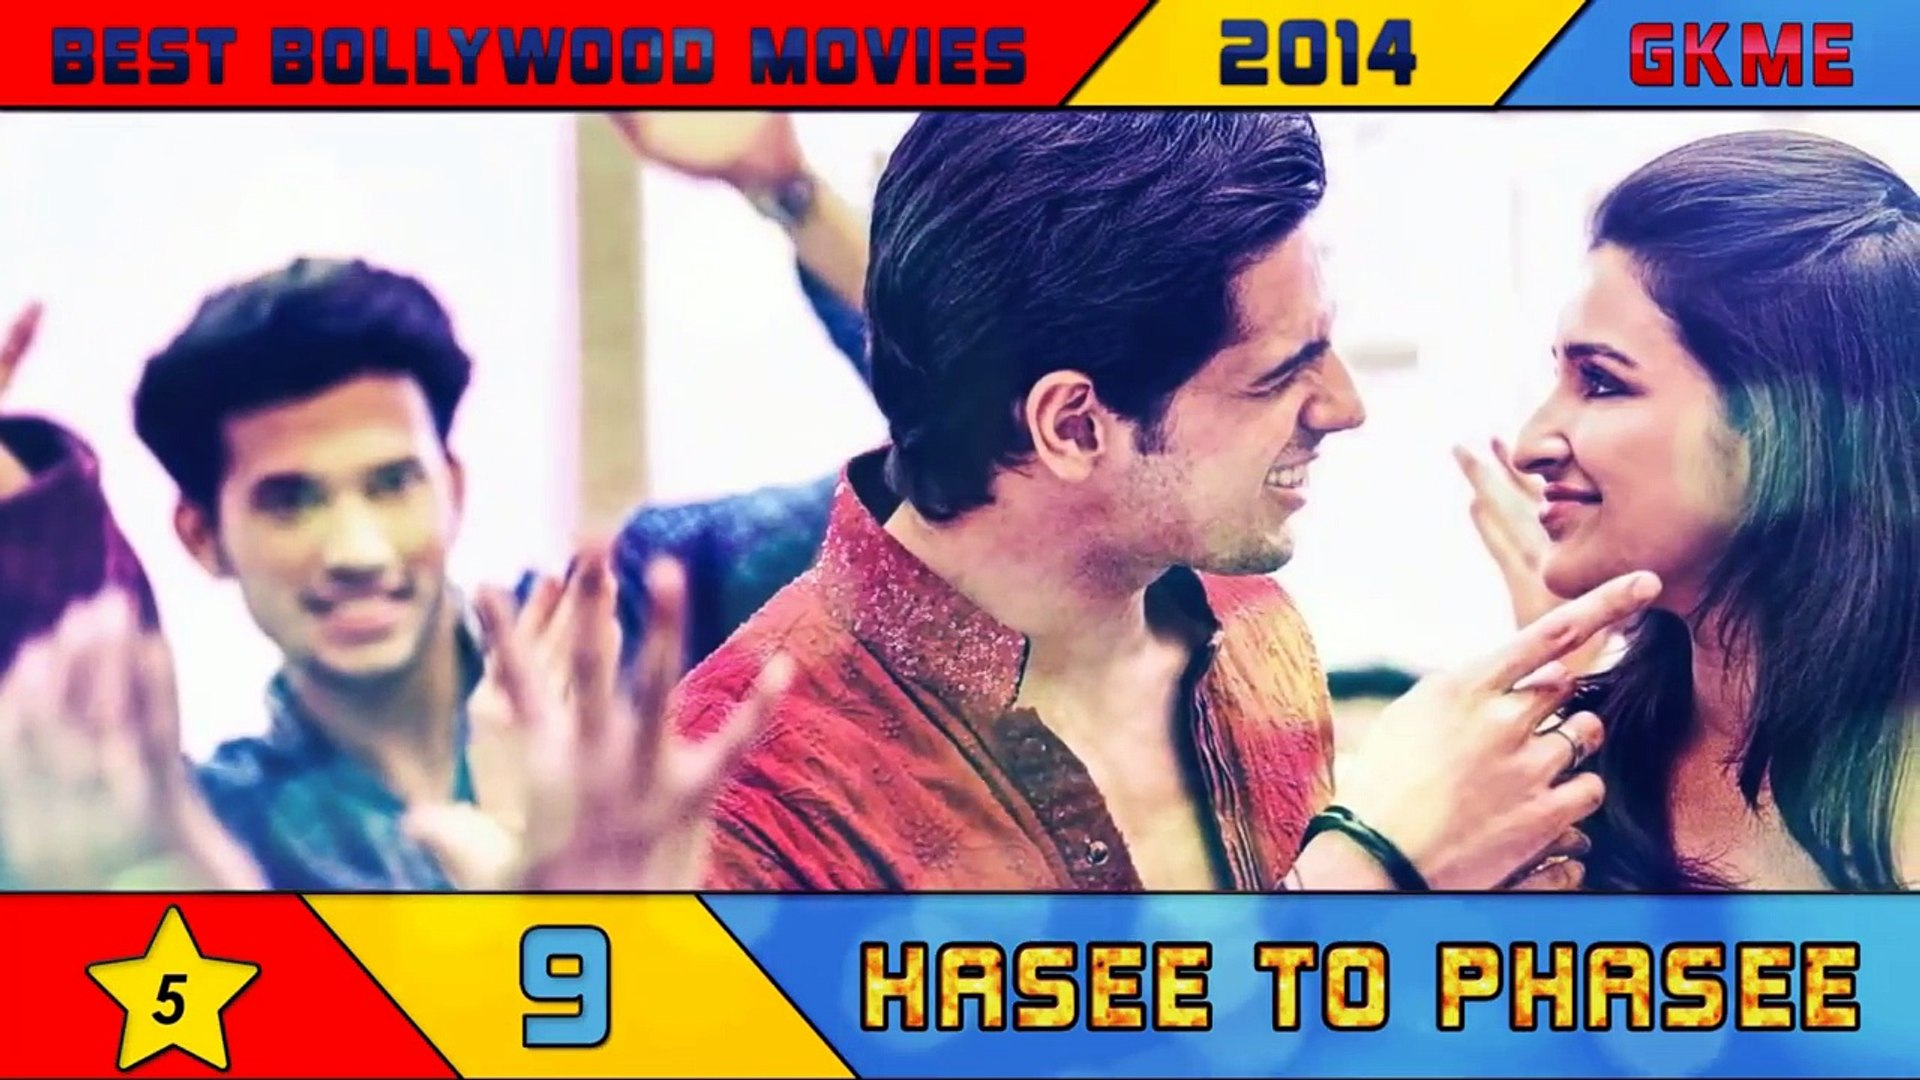 TOP 10 Best Bollywood Movies │ Hindi Movies List 2014